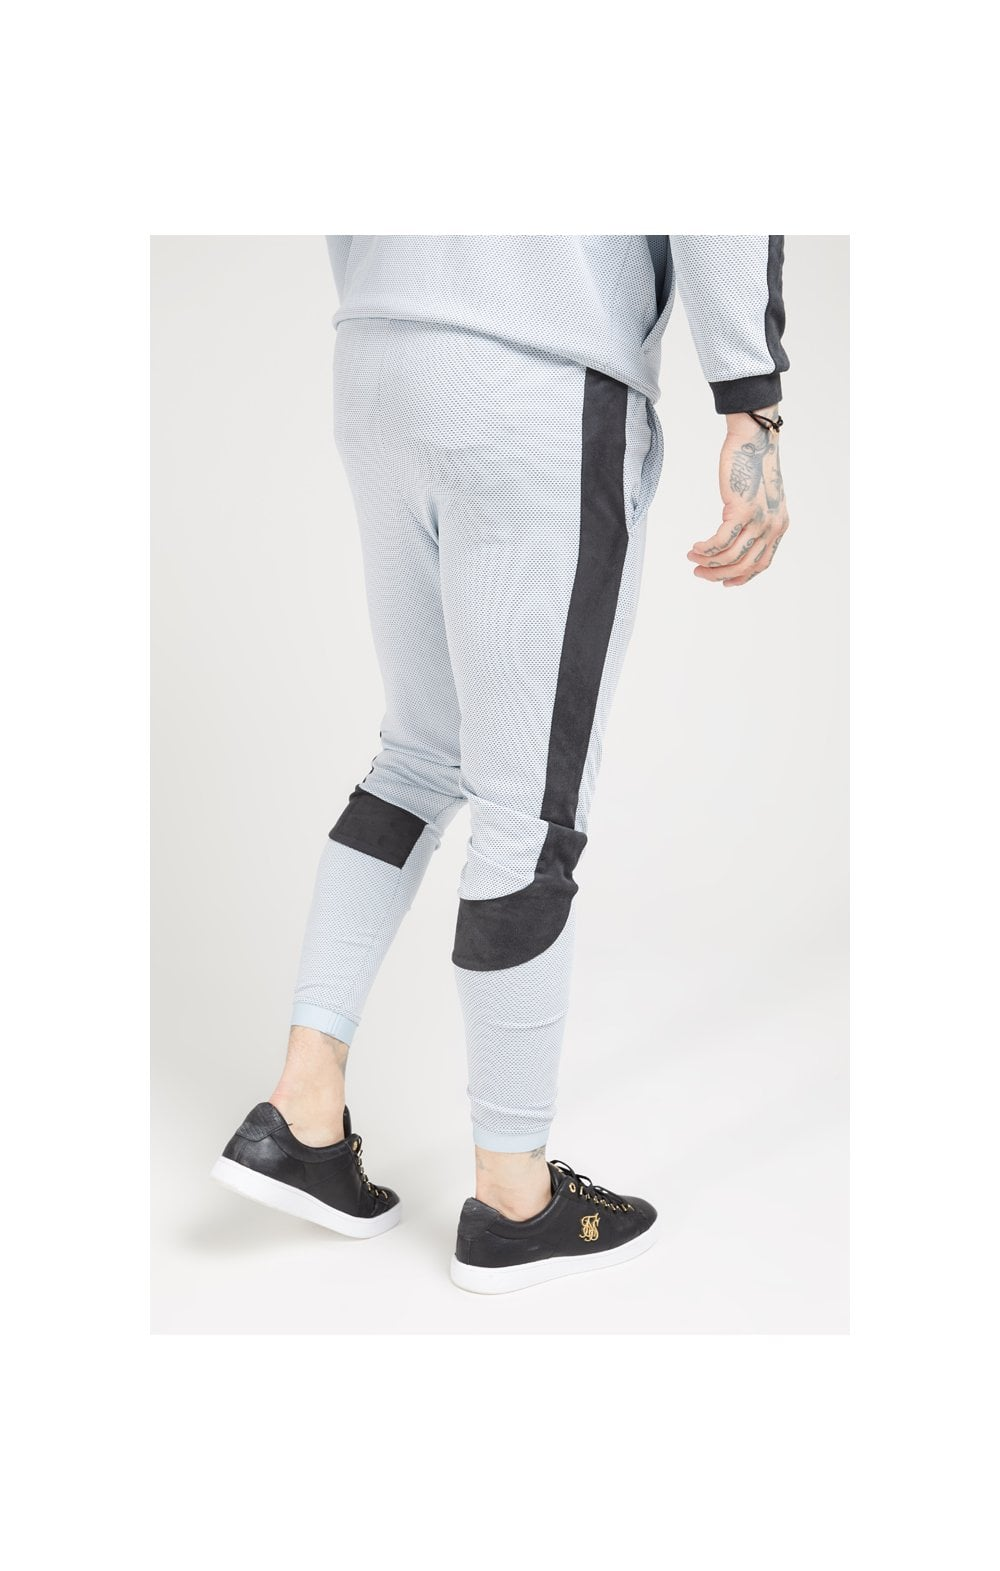 Load image into Gallery viewer, SikSilk Athlete Eyelet Tape Track Pants – Ice Grey & Charcoal (2)